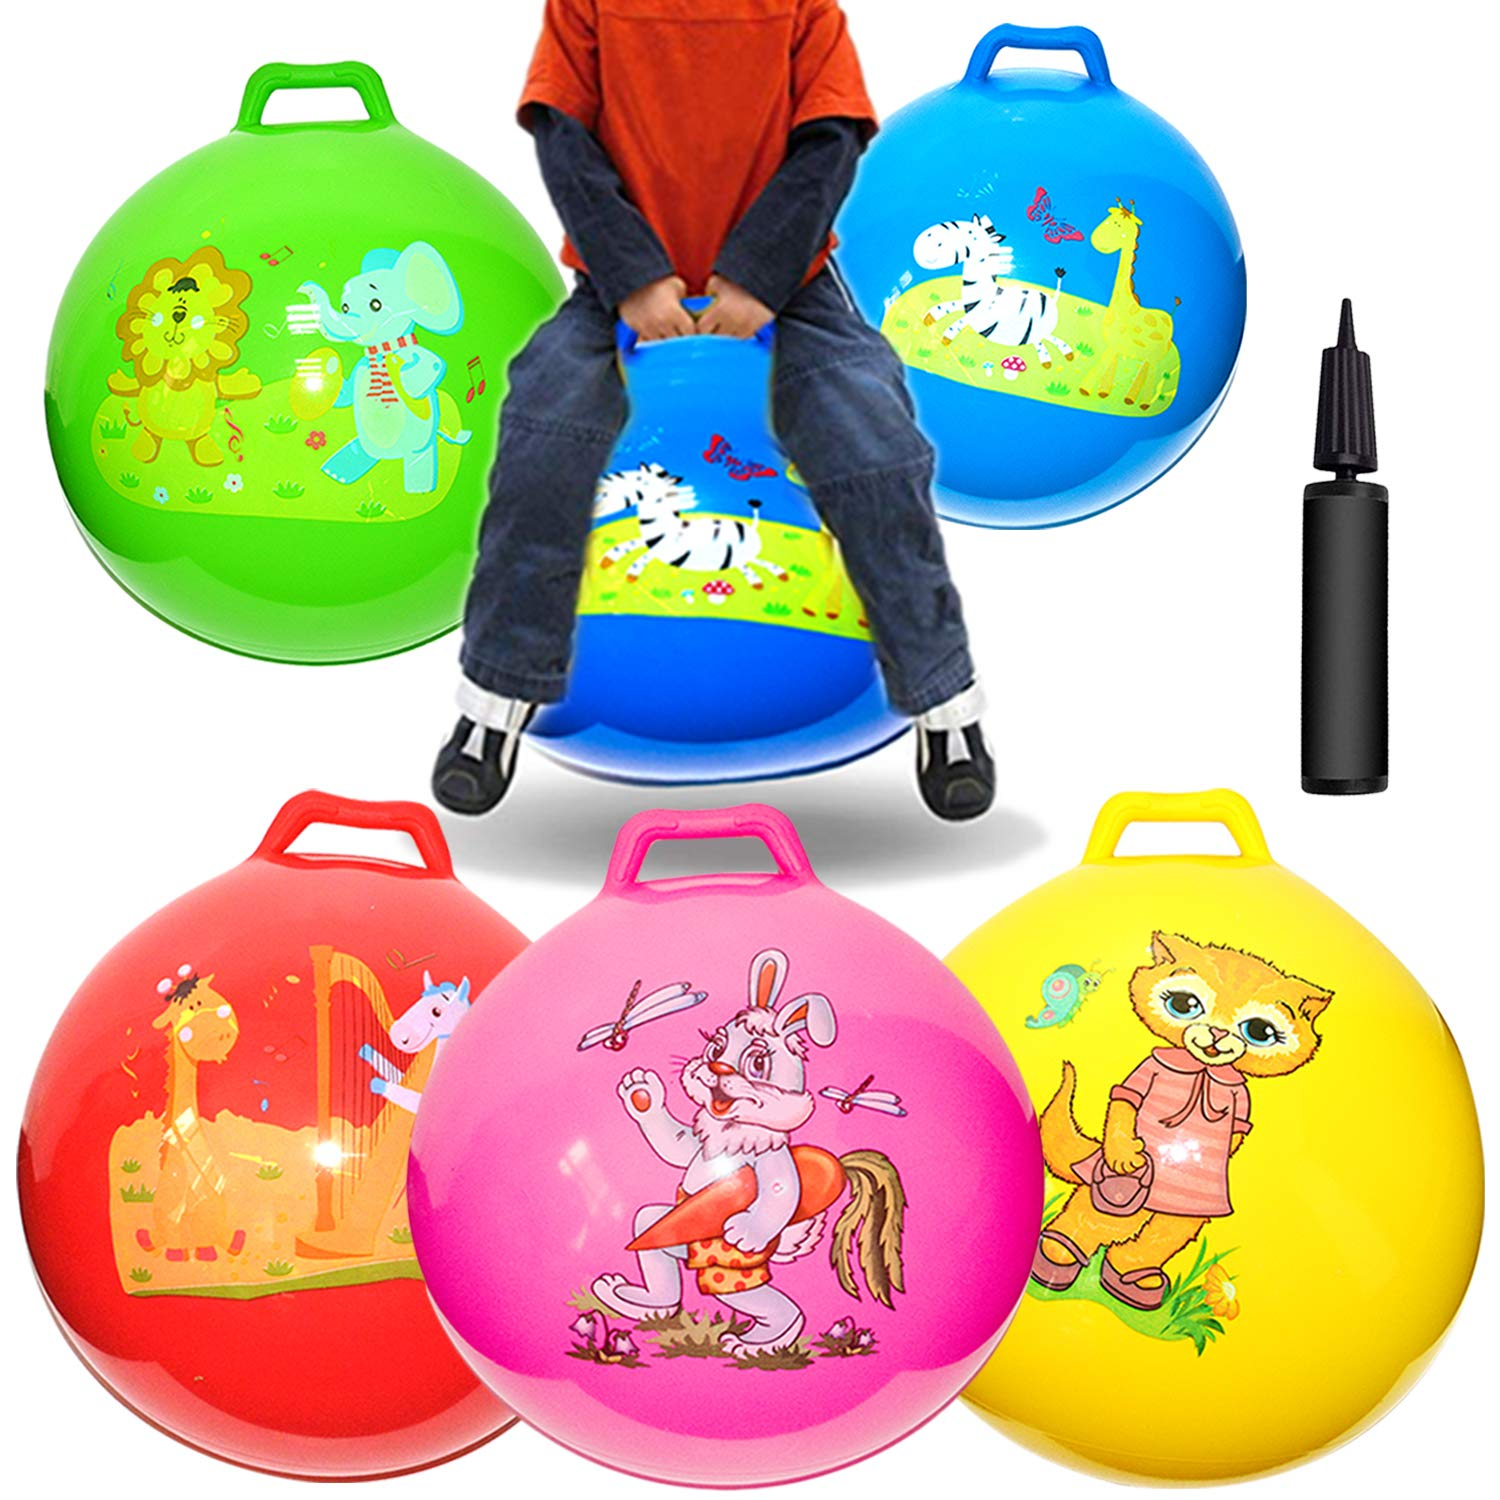 Space Hopper Hop Bouncy Jumping Ball with Handle for Kids Ages 3-6 Ride On Toys Hoppers Games, 5 Pack 18 Inch Hopper Balls and Pump for Kids School Family Team Sports Birthday Party Favors